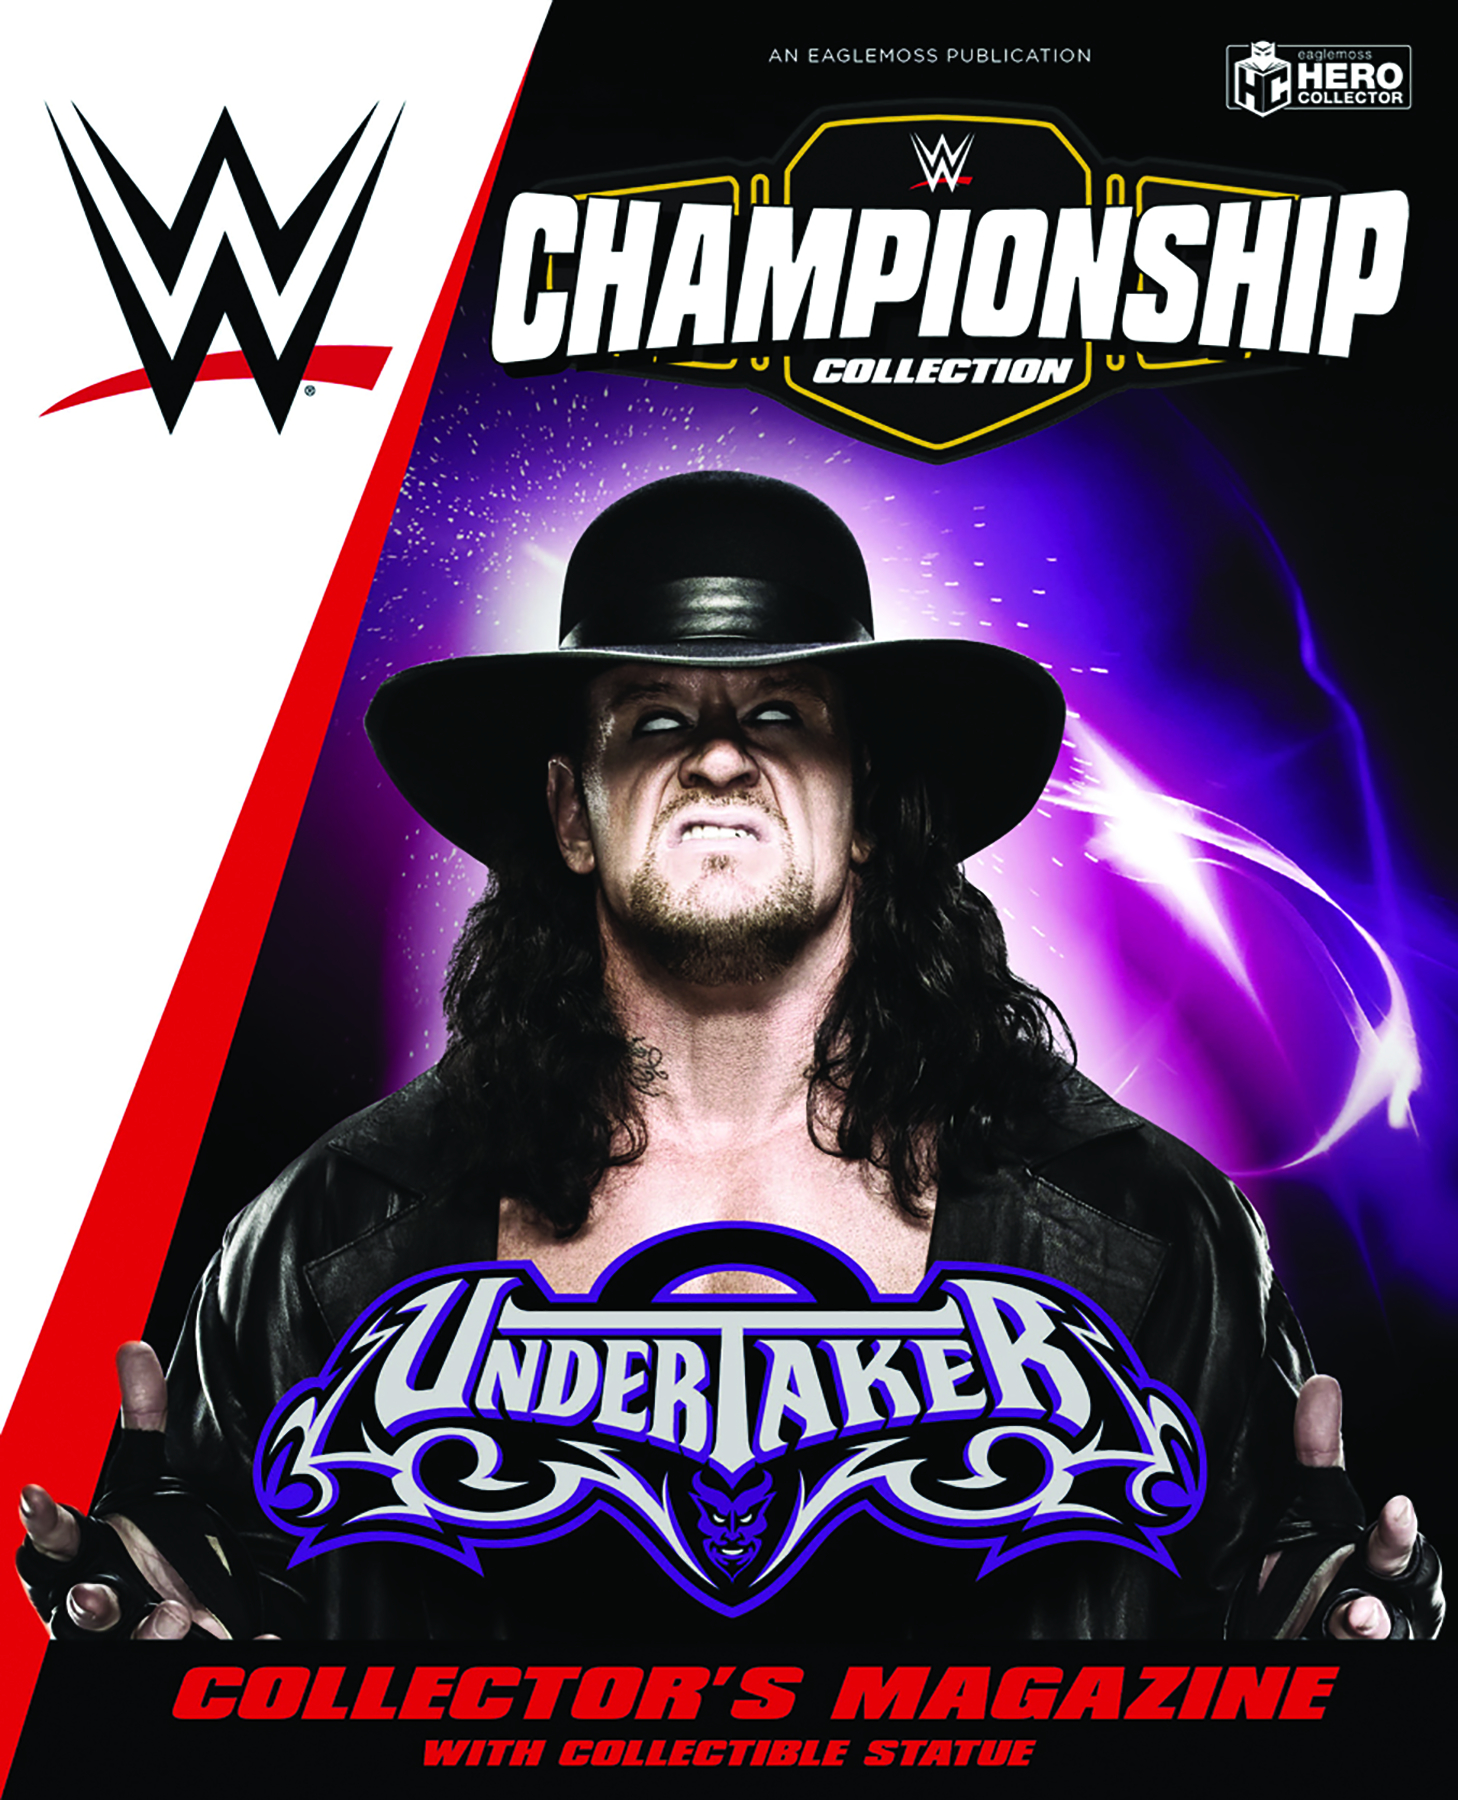 WWE FIG CHAMPIONSHIP COLL #2 UNDERTAKER